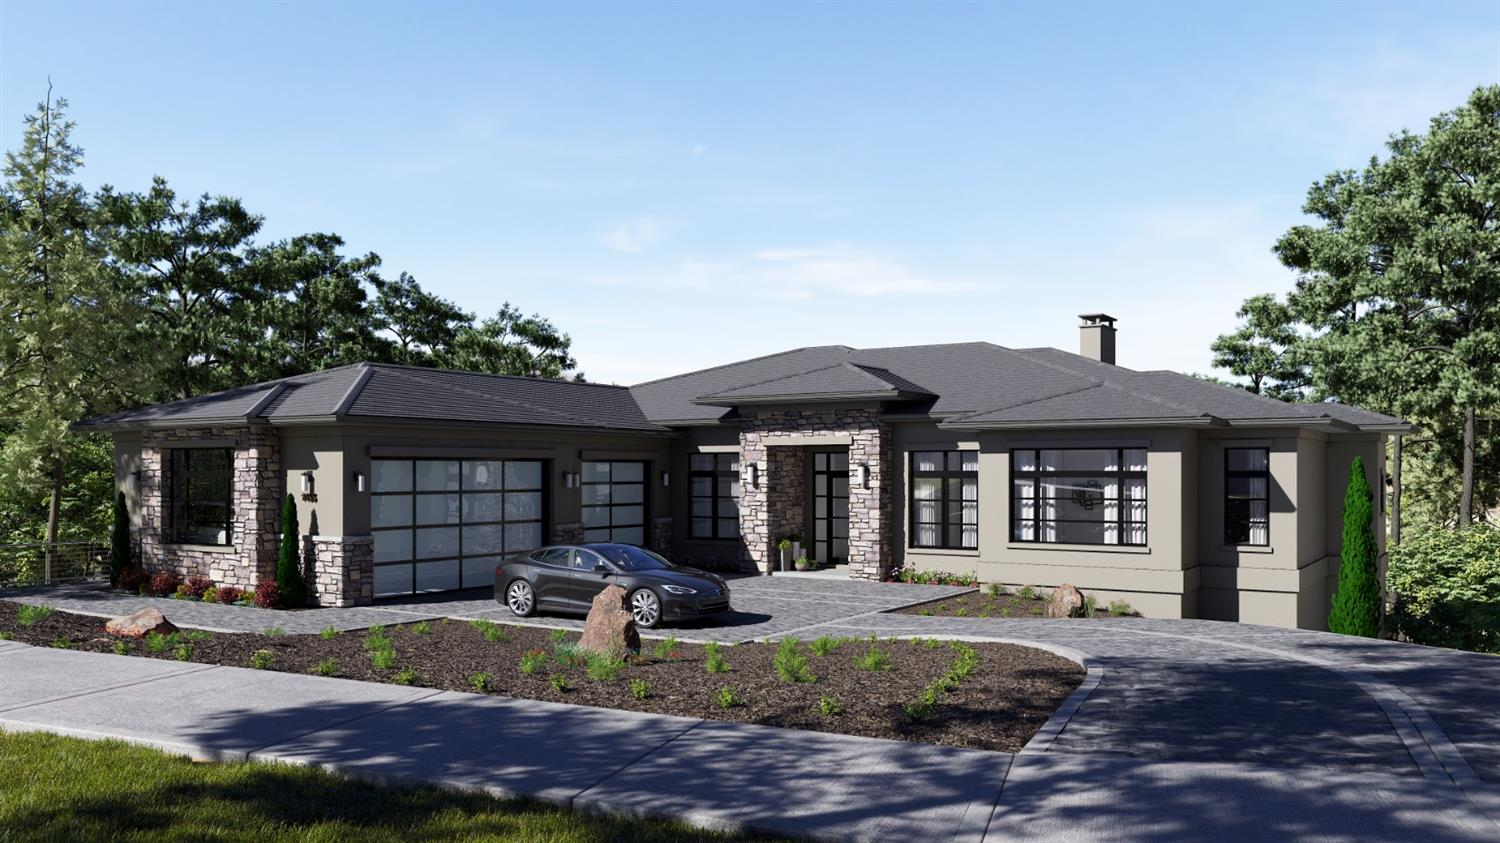 Enjoy a New Construction Custom Home on a 1 acre parcel. Completion projected to be late July 2021. This home features a great room concept, Thermadorappliances along with a Full Dirty Kitchen and Dining room with large picture windows with lots of natural light and beautiful privatebackyard with many trees . This home features over 4,200 5 bedrooms and 4 bathrooms, large laundry. Quartz countertops throughout with 12 foot ceilings, custom tile and a Large 3 car Garage with a spacious driveway. The championship golf course is one of seven in the world co-designed by Robert Trent Jones, Sr. and Jr. Within walking distance to the clubhouse offering top-notch golfing, fine dining, fitness center, swimming pool, tennis courts, miles of biking/h